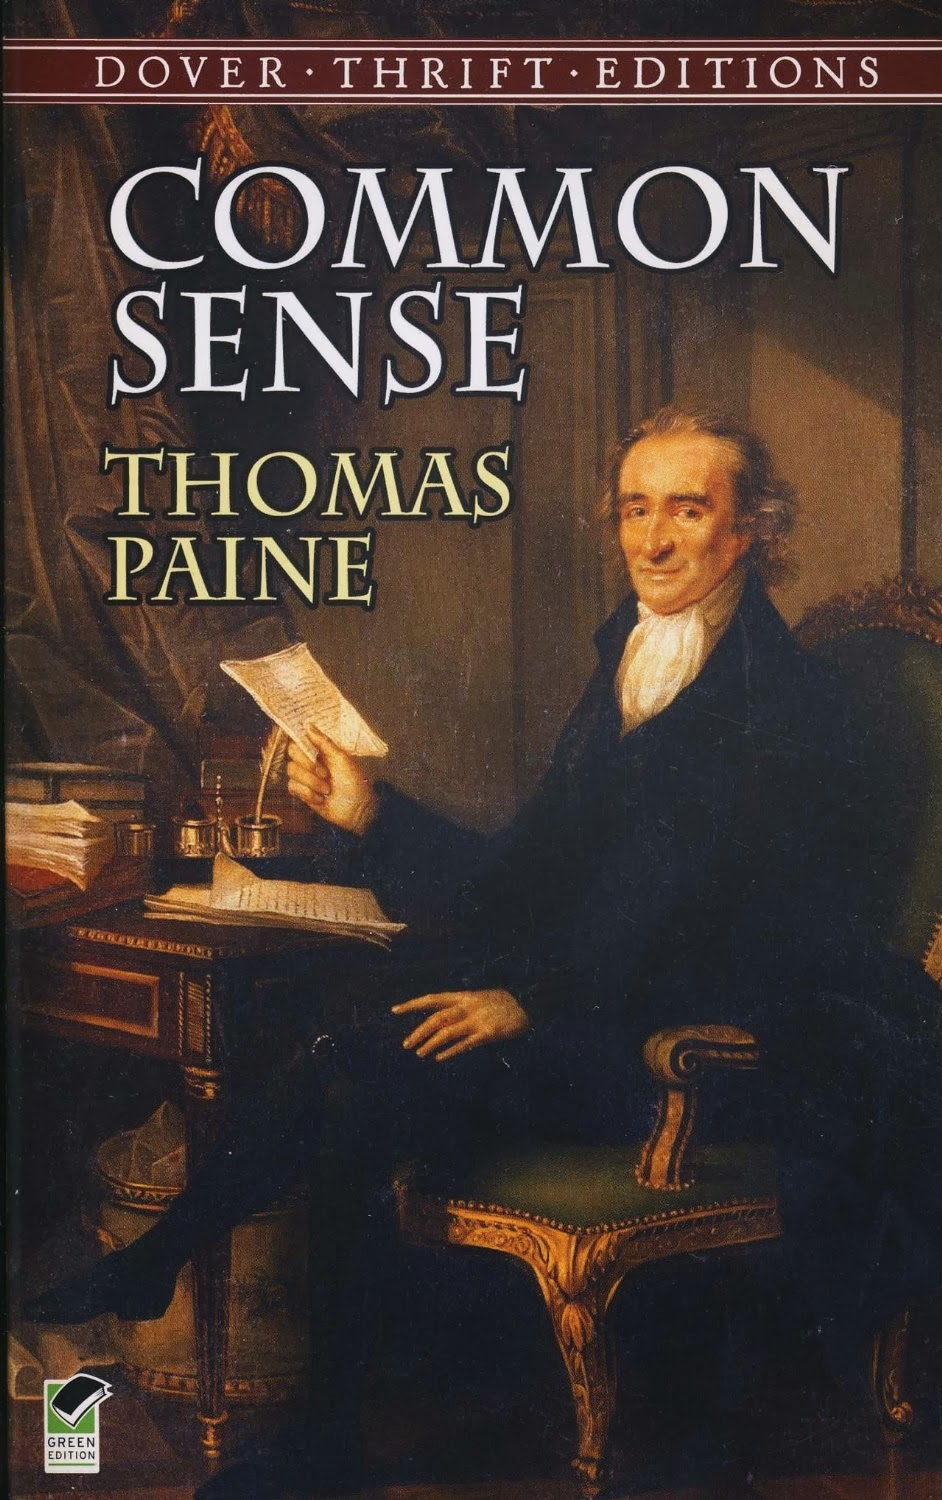 an analysis of common sense a book by thomas paine The 100 best nonfiction books: no 85 - common sense by tom paine (1776) thomas paine, unmasked as the author of this sensational broadside common sense is a model of popular journalistic brio.